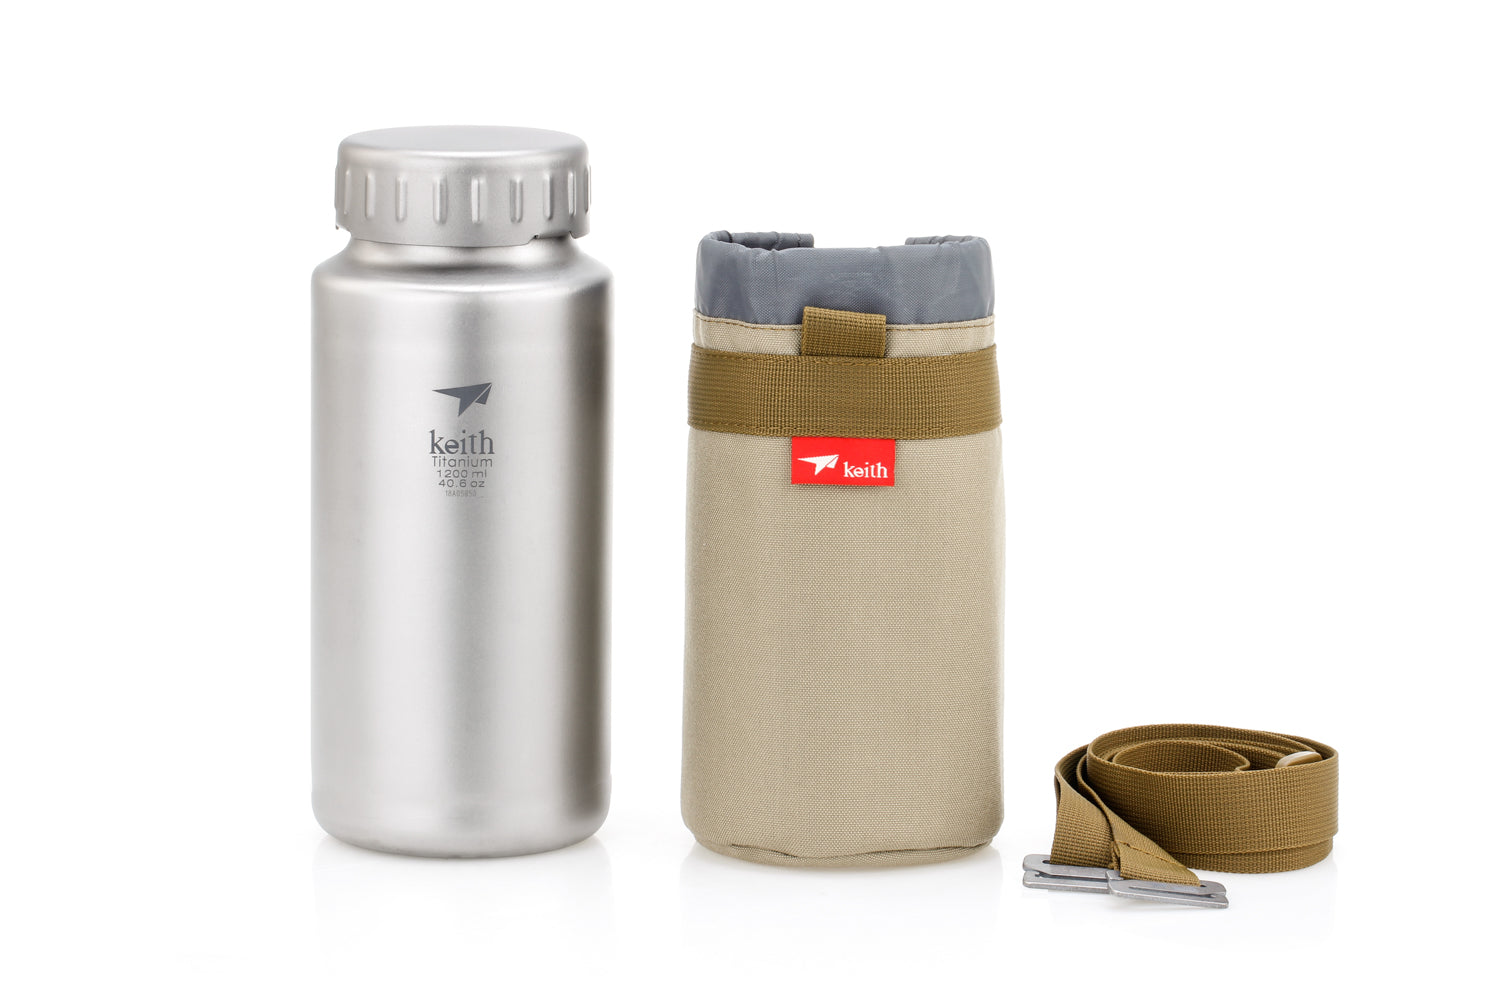 Keith Titanium Sport Bottle Ti3036